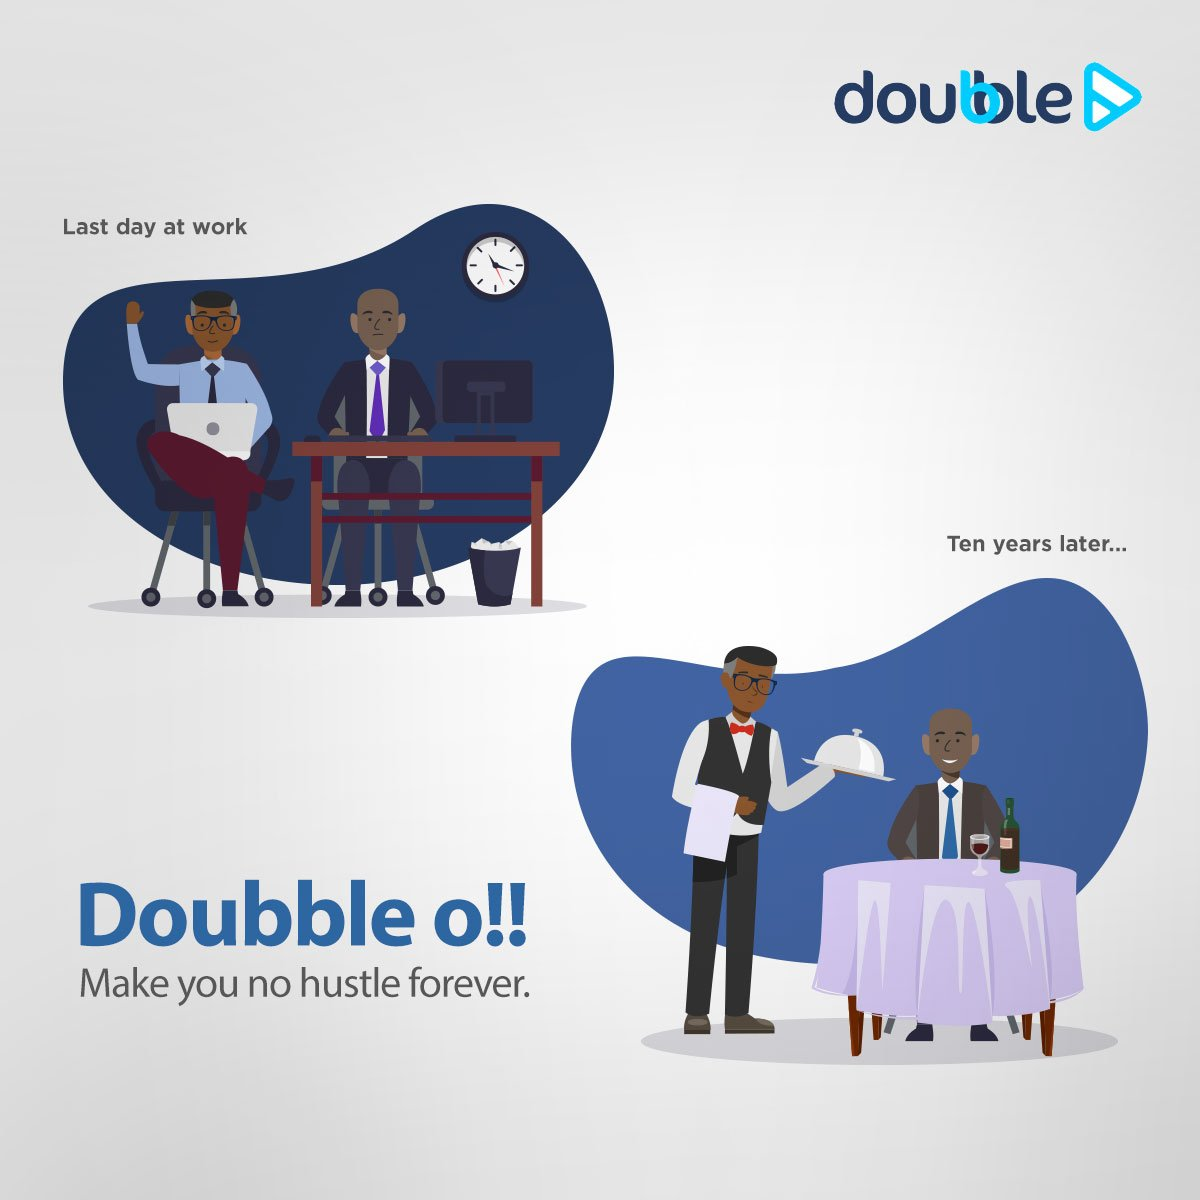 """Sterling Bank Plc on Twitter: """"We keep you going even when the benefits  stop. Experience long-lasting investment with Doubble. Get started today  with your Doubble investment. #Doubble… https://t.co/GmhSvb5mtx"""""""